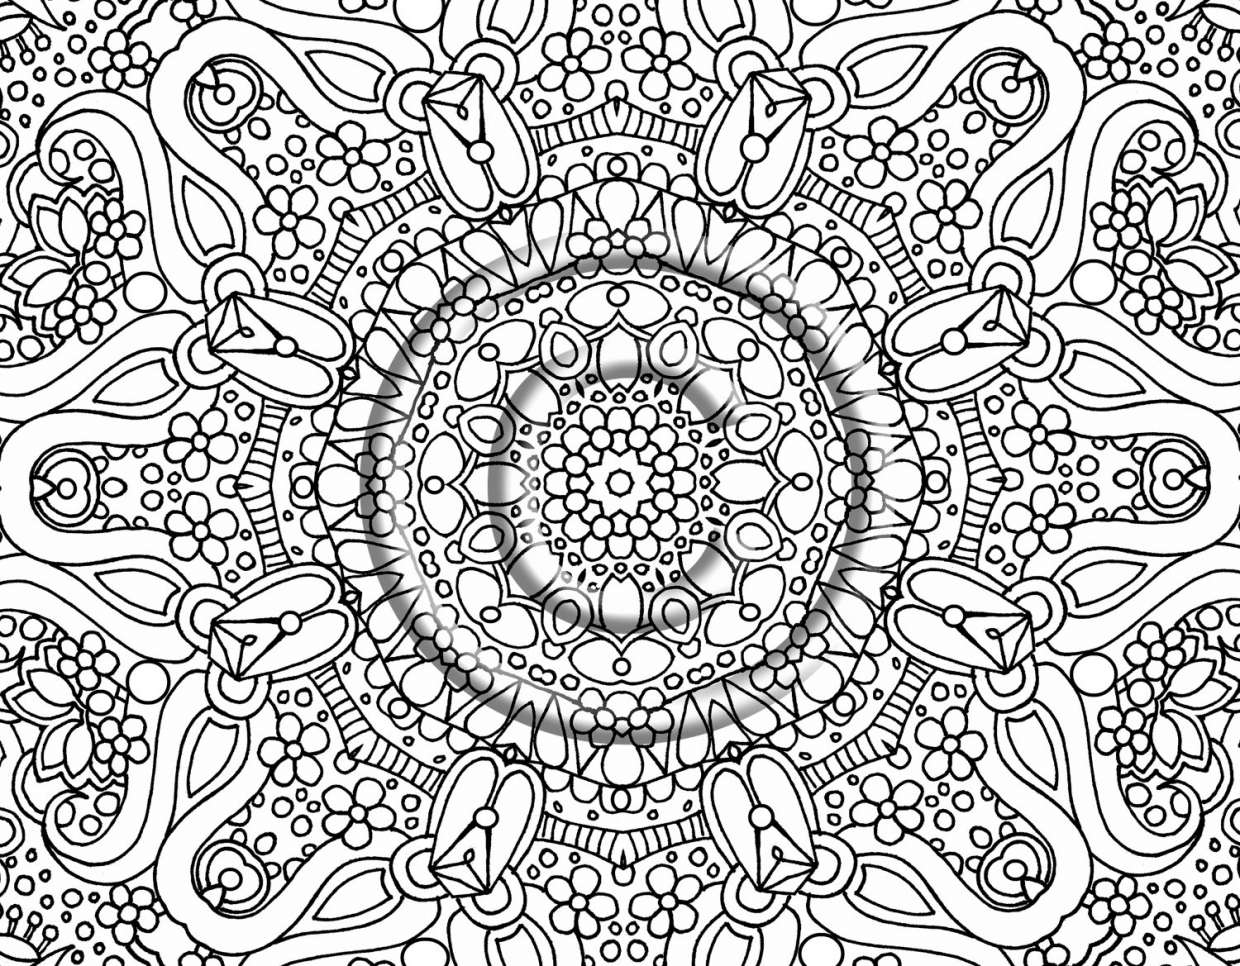 complex online coloring pages - photo#7